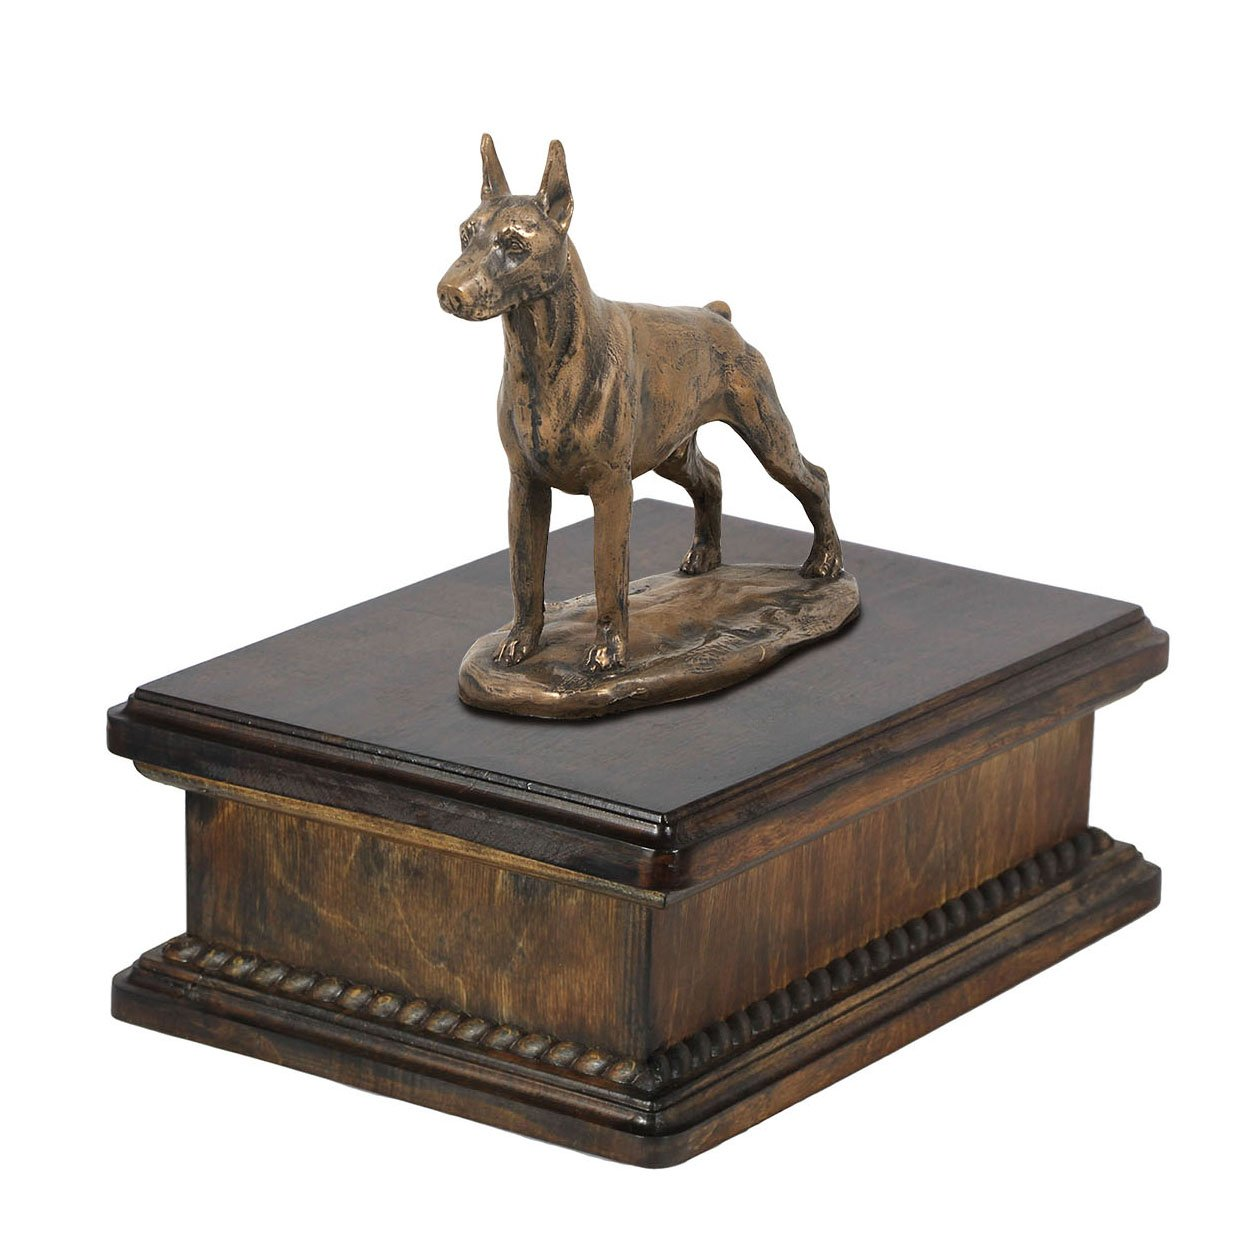 Doberman (cropped), memorial, urn for dog's ashes, with dog statue, exclusive, ArtDog